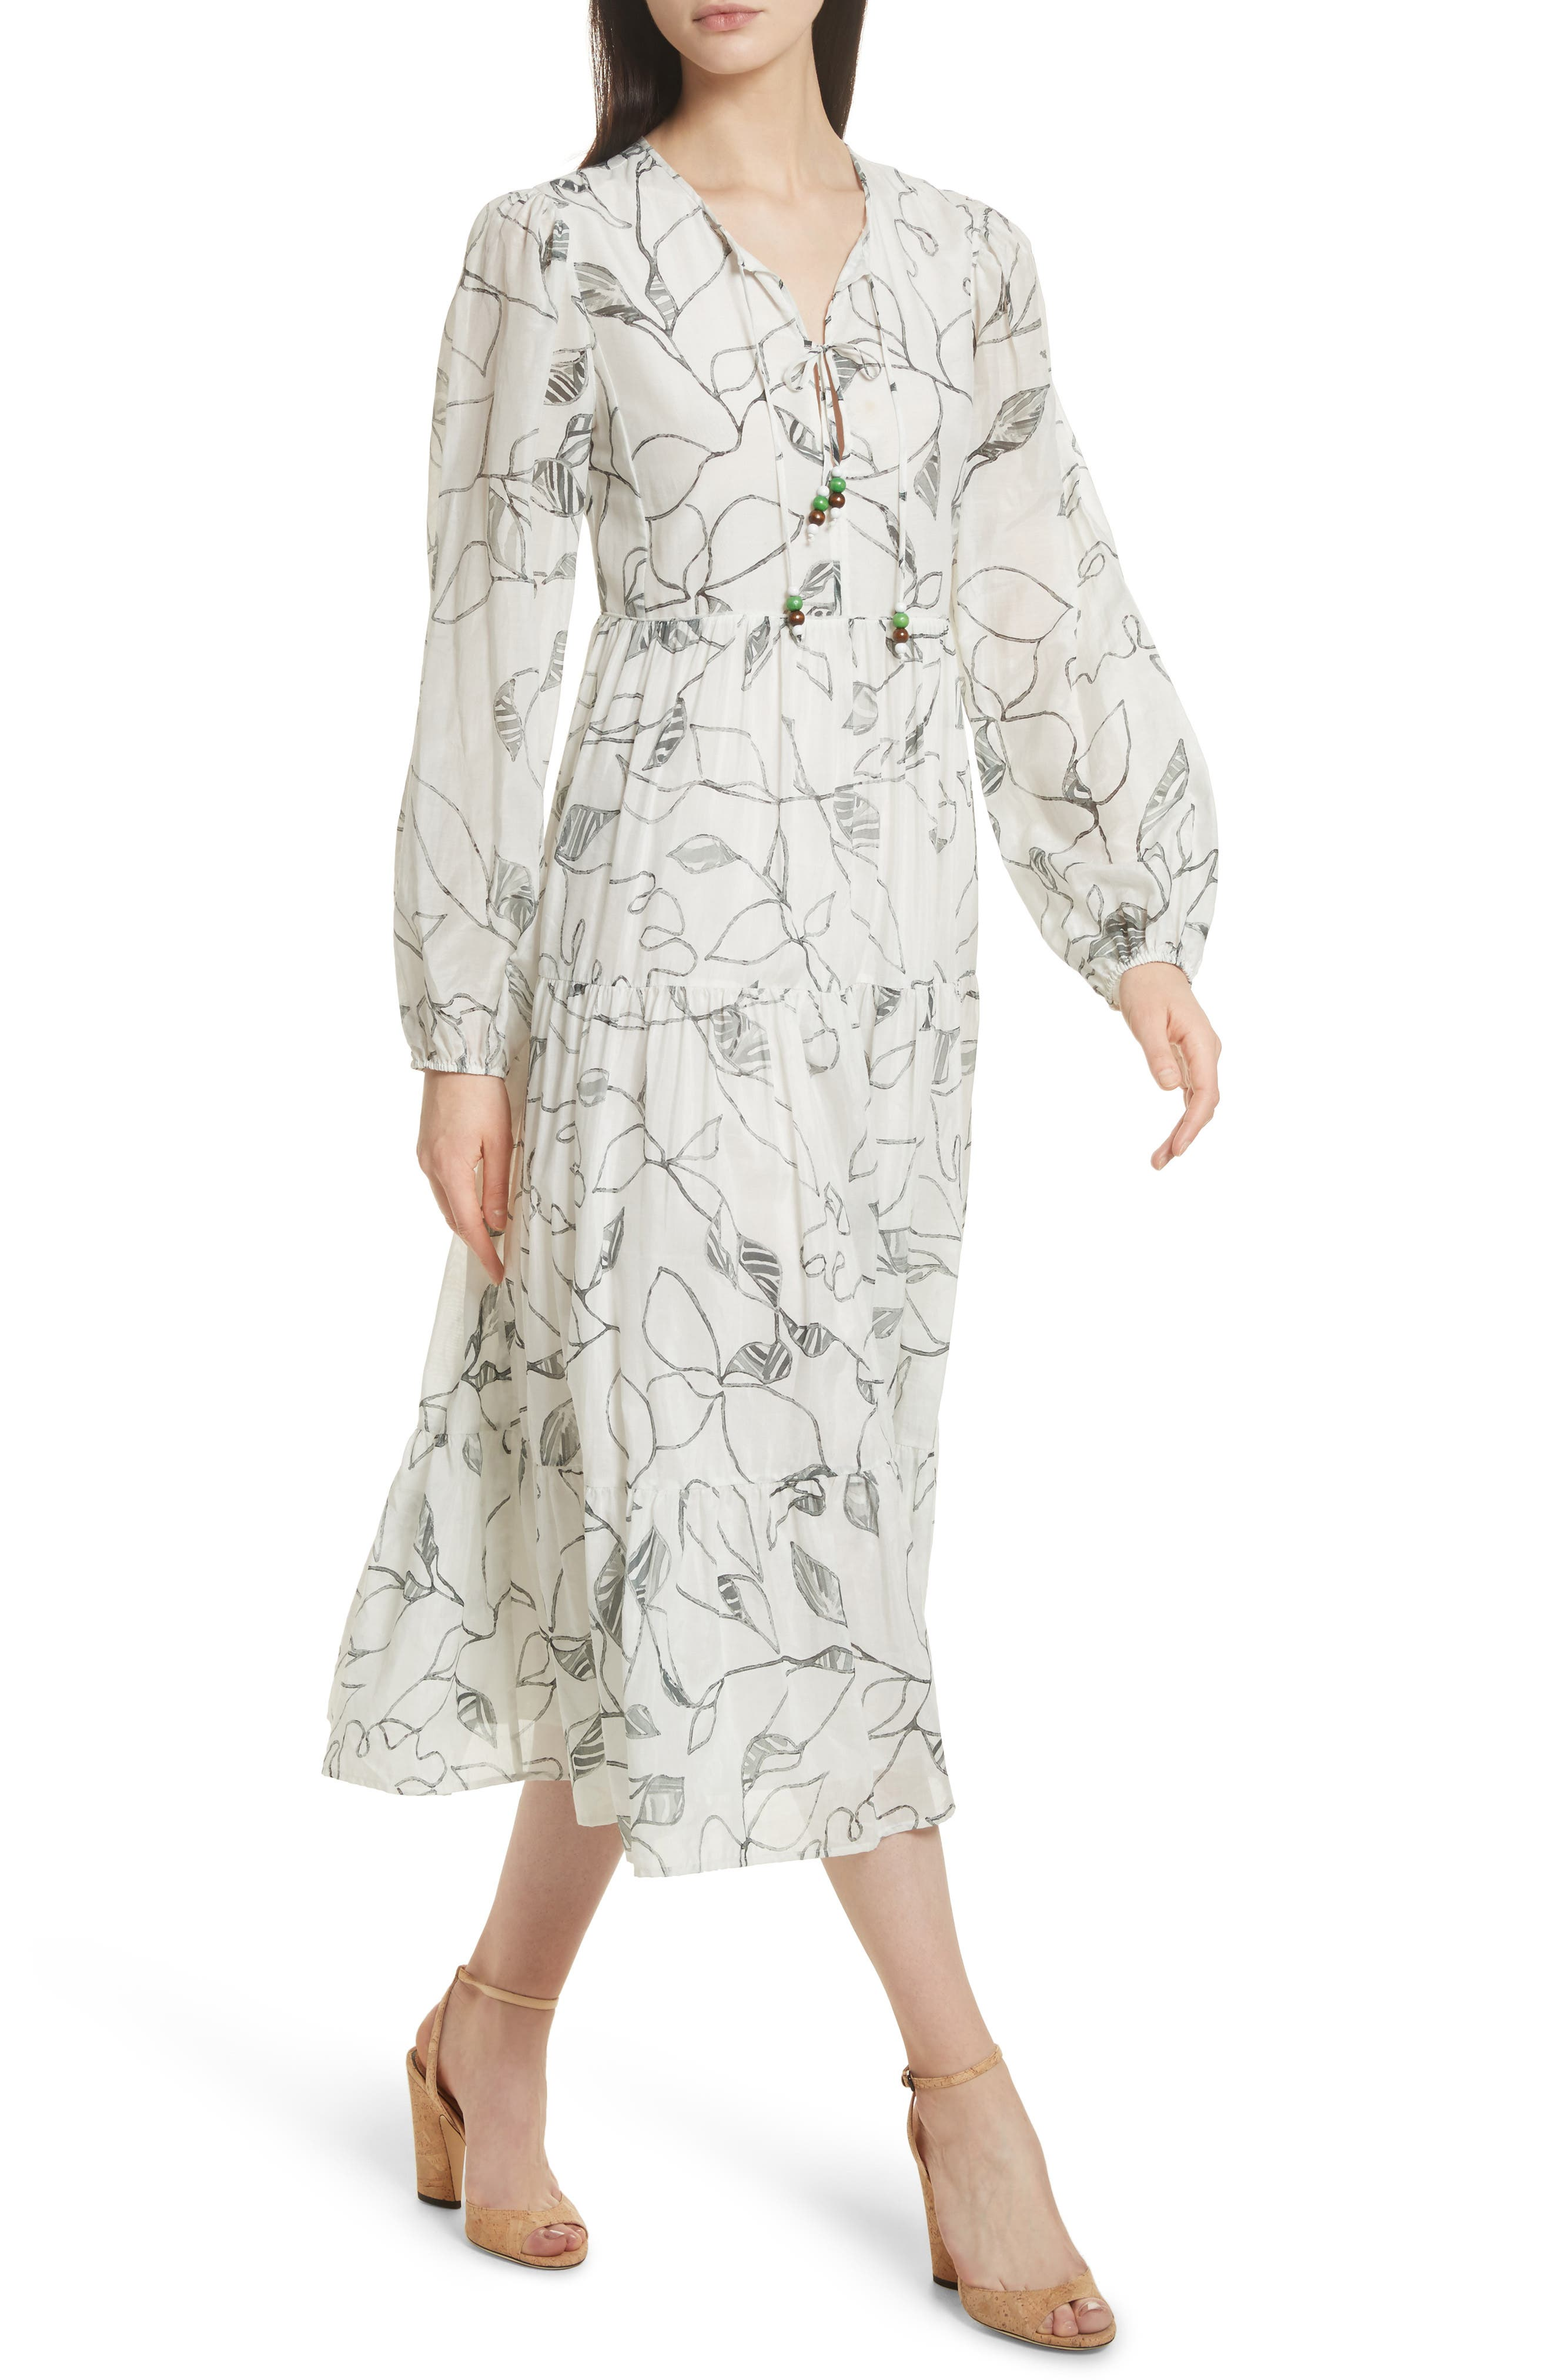 Gwendolyn Tiered Peasant Dress,                             Alternate thumbnail 4, color,                             White Multi